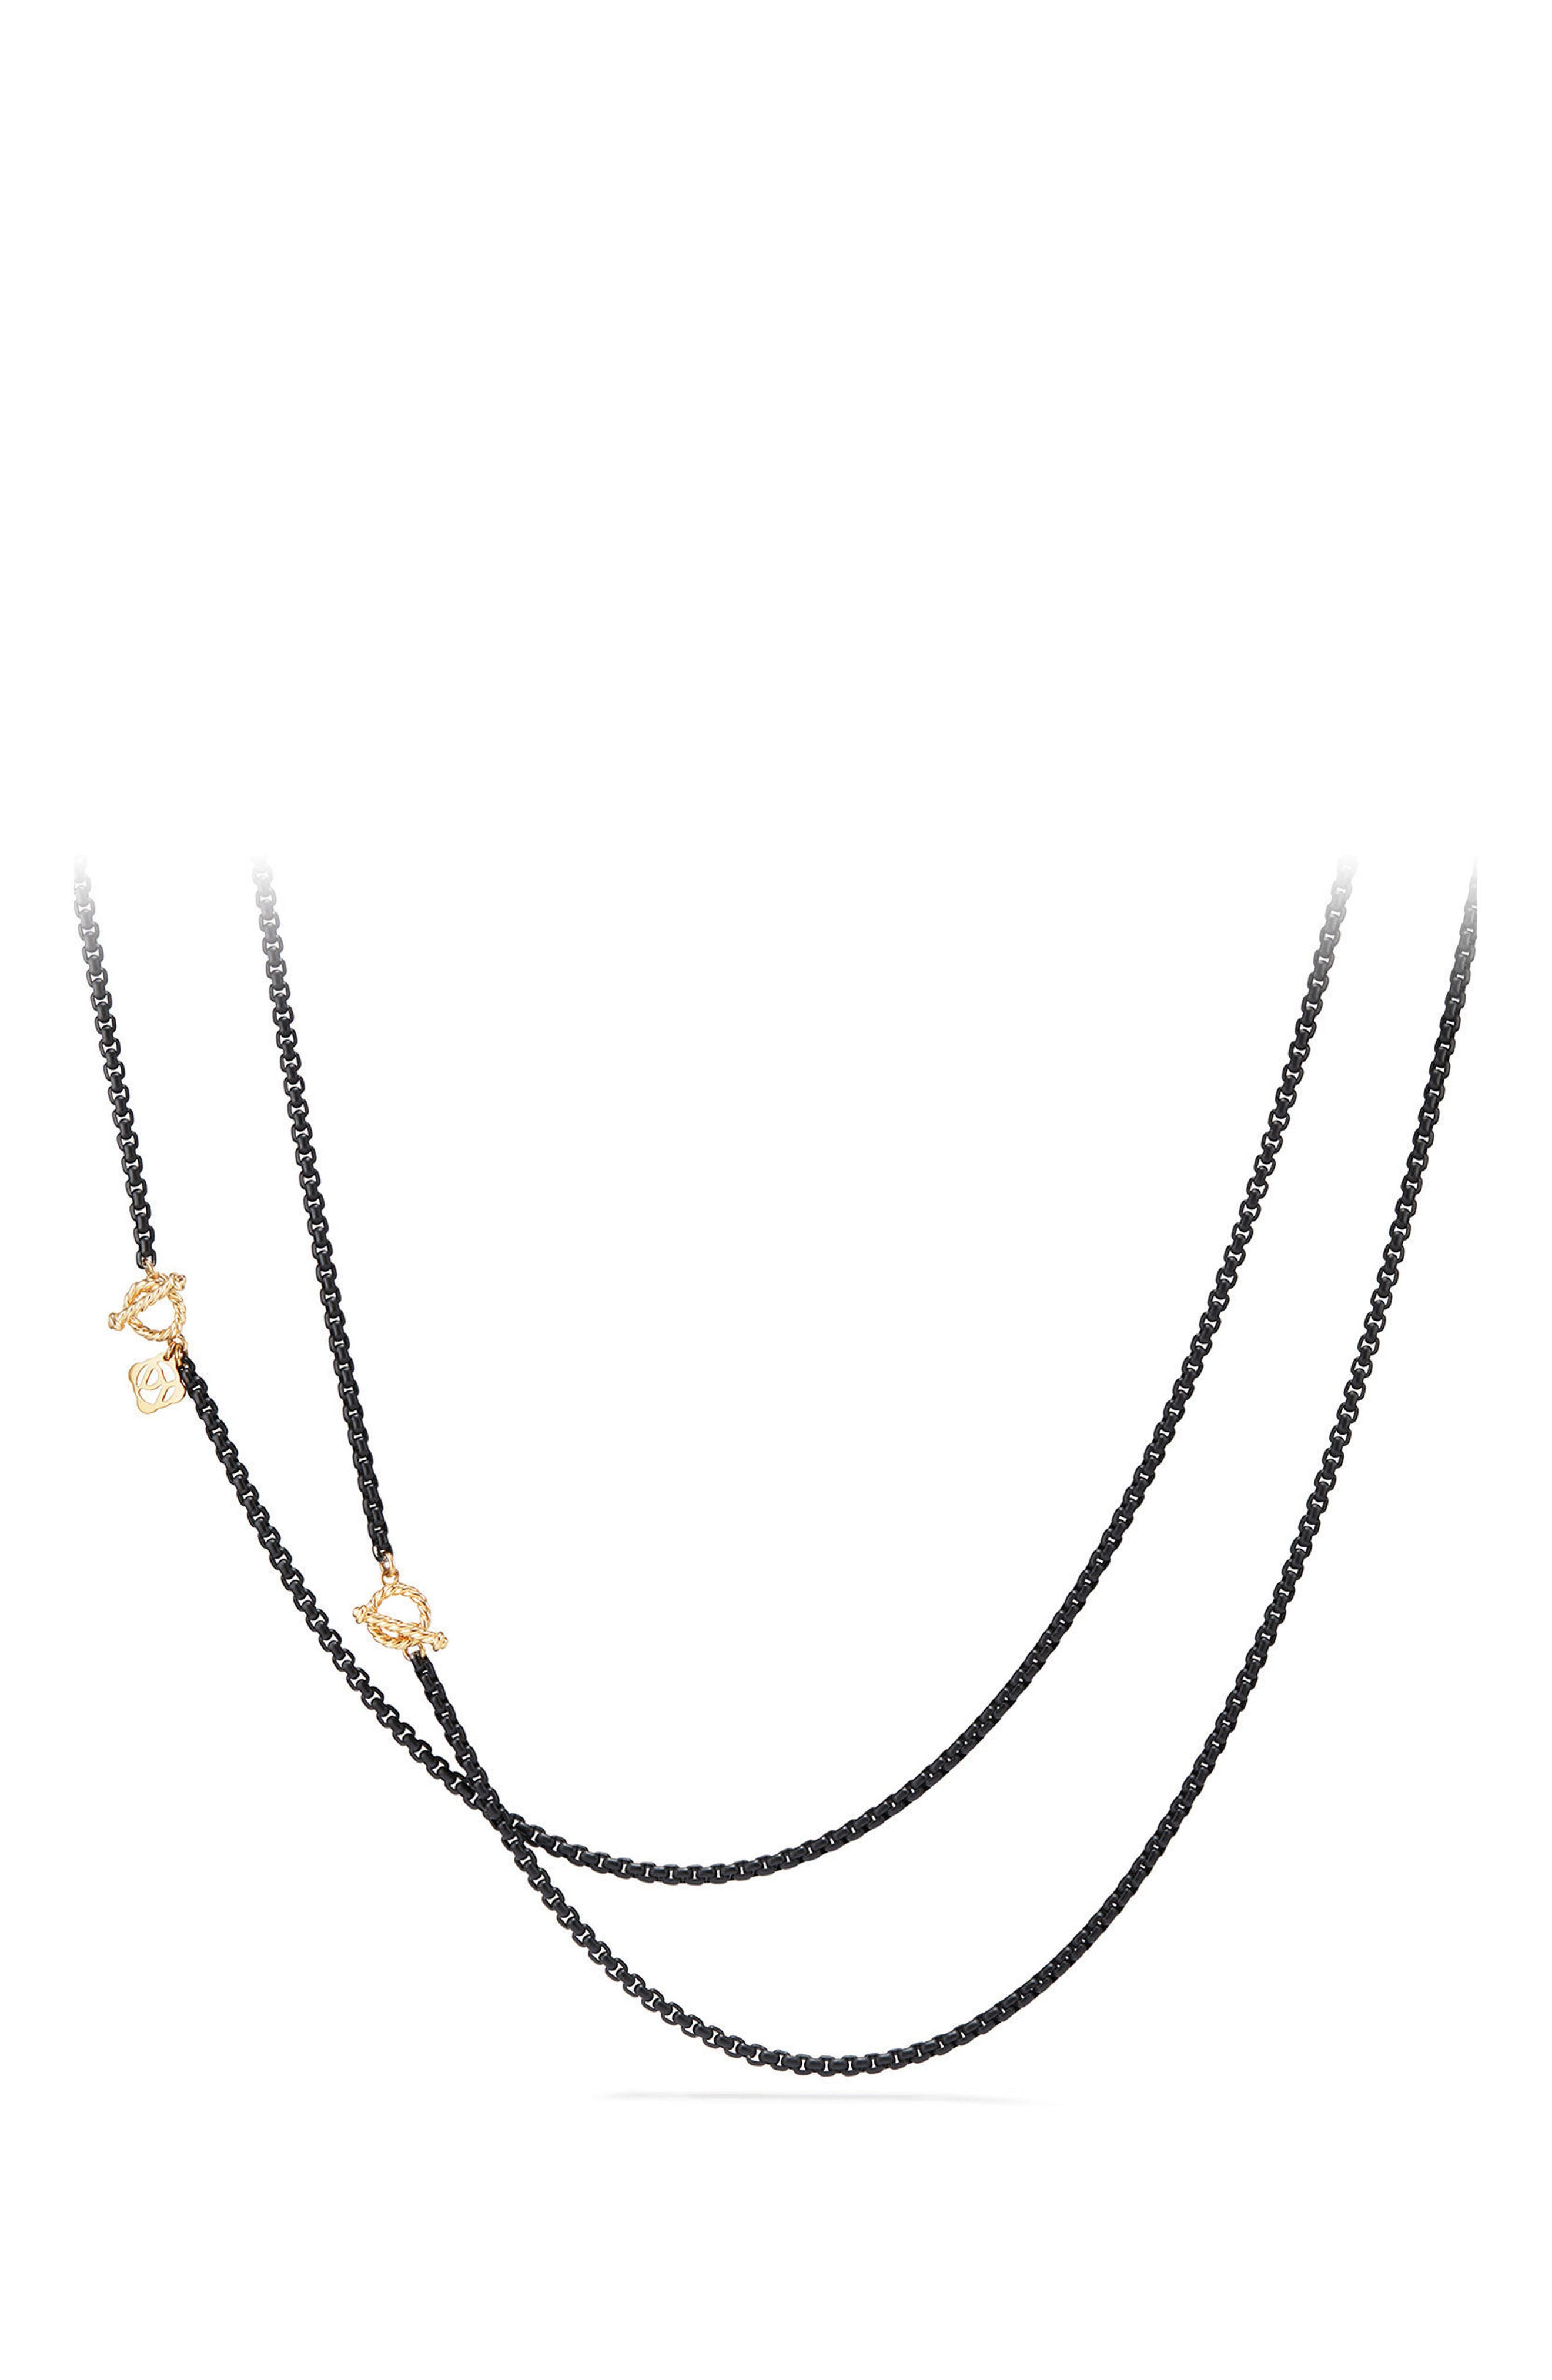 David Yurman DY Bel Aire Chain Necklace with 14K Gold Accents